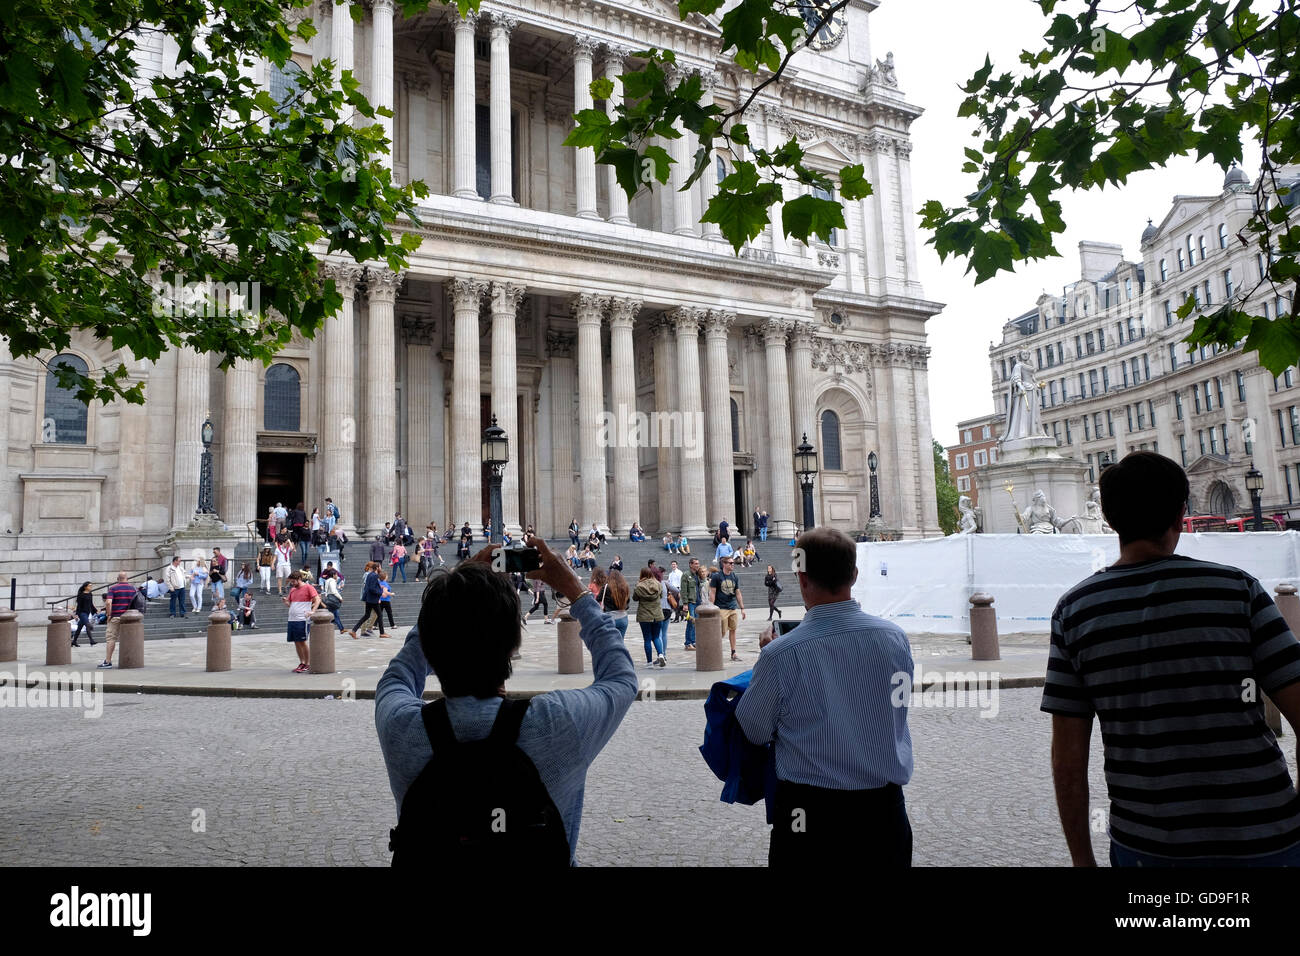 Tourists outside St Paul's Cathedral a London landmark Stock Photo